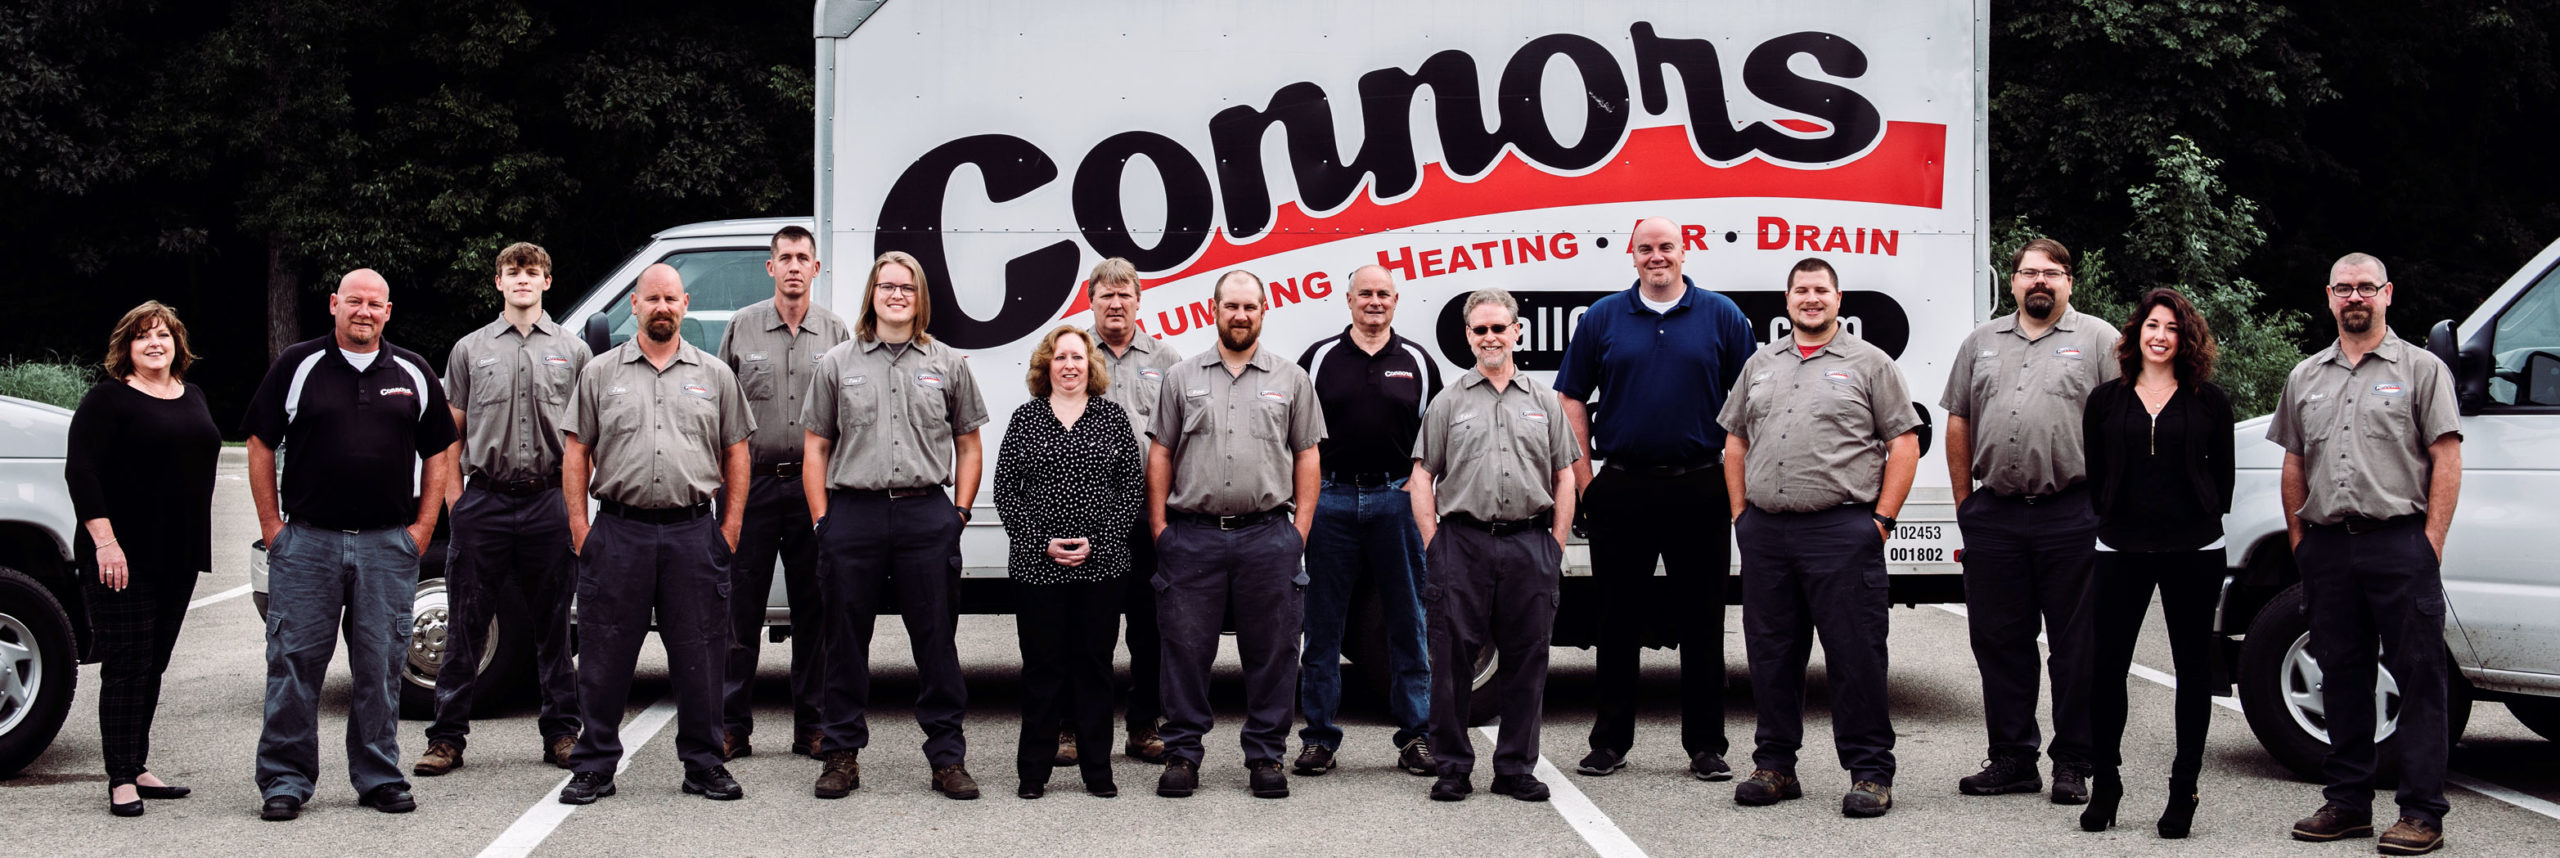 Connors Plumbing Heating Air & Drains Team